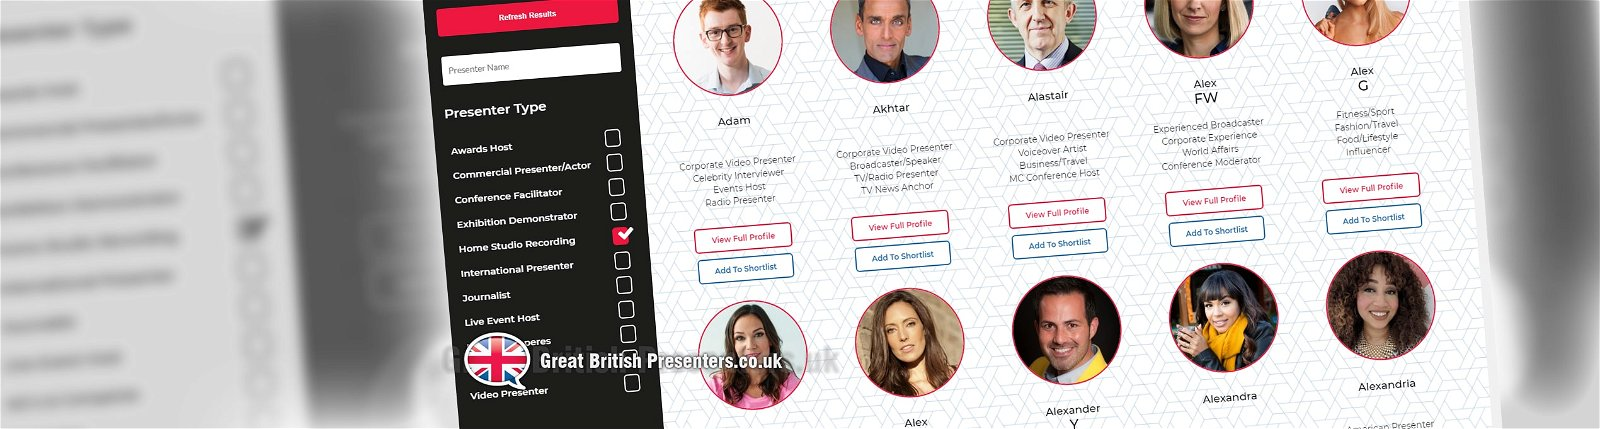 New-professional-presenters-with-studios-website-filter-from-Great-British-Presenters